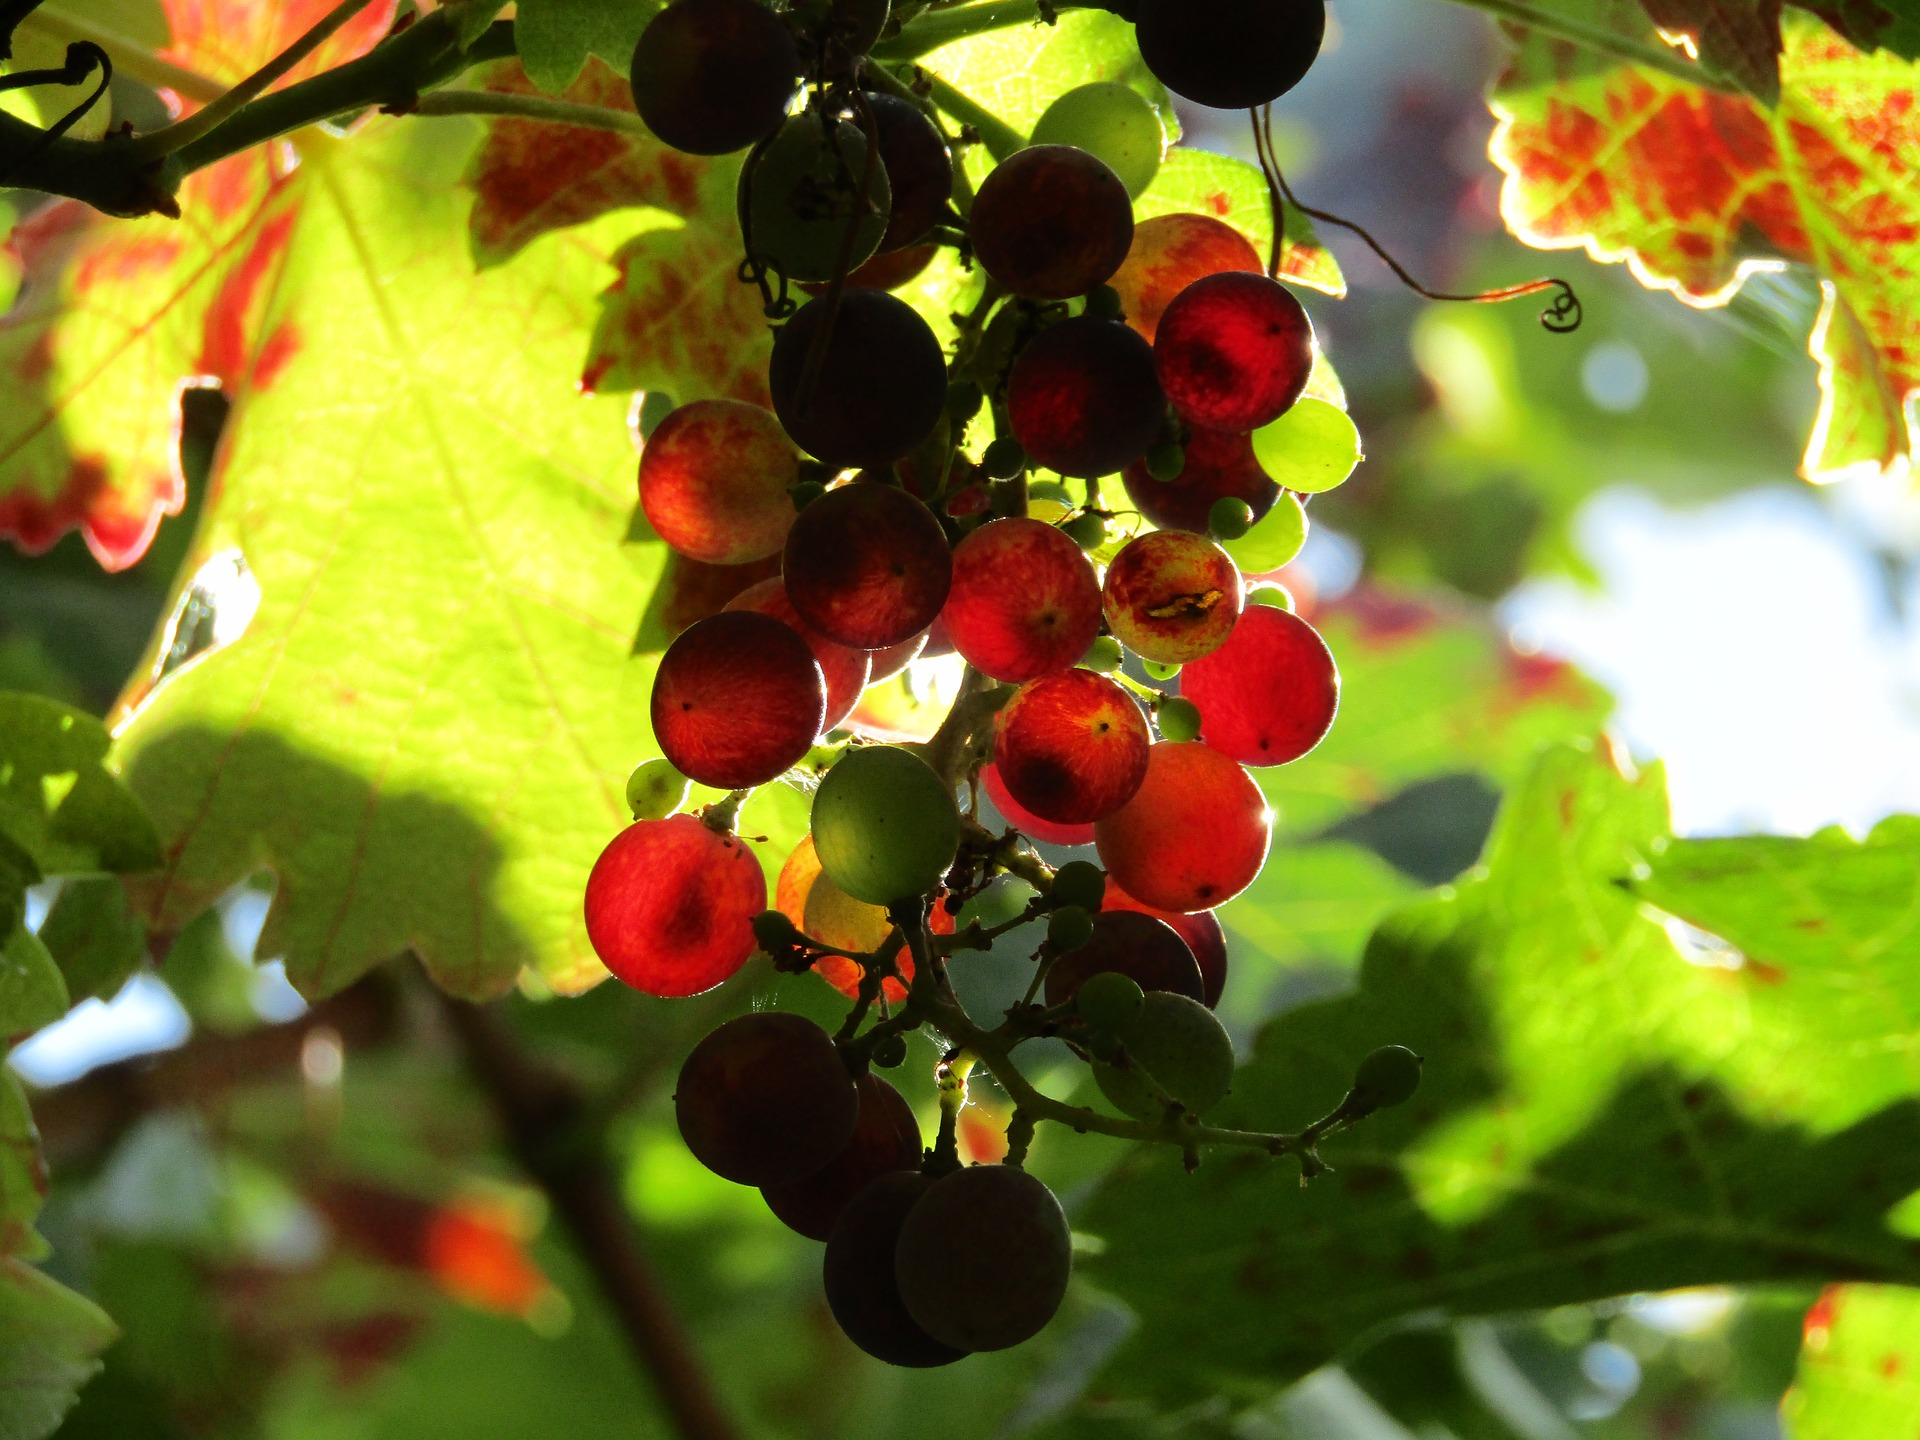 grapes red cool shot.jpg